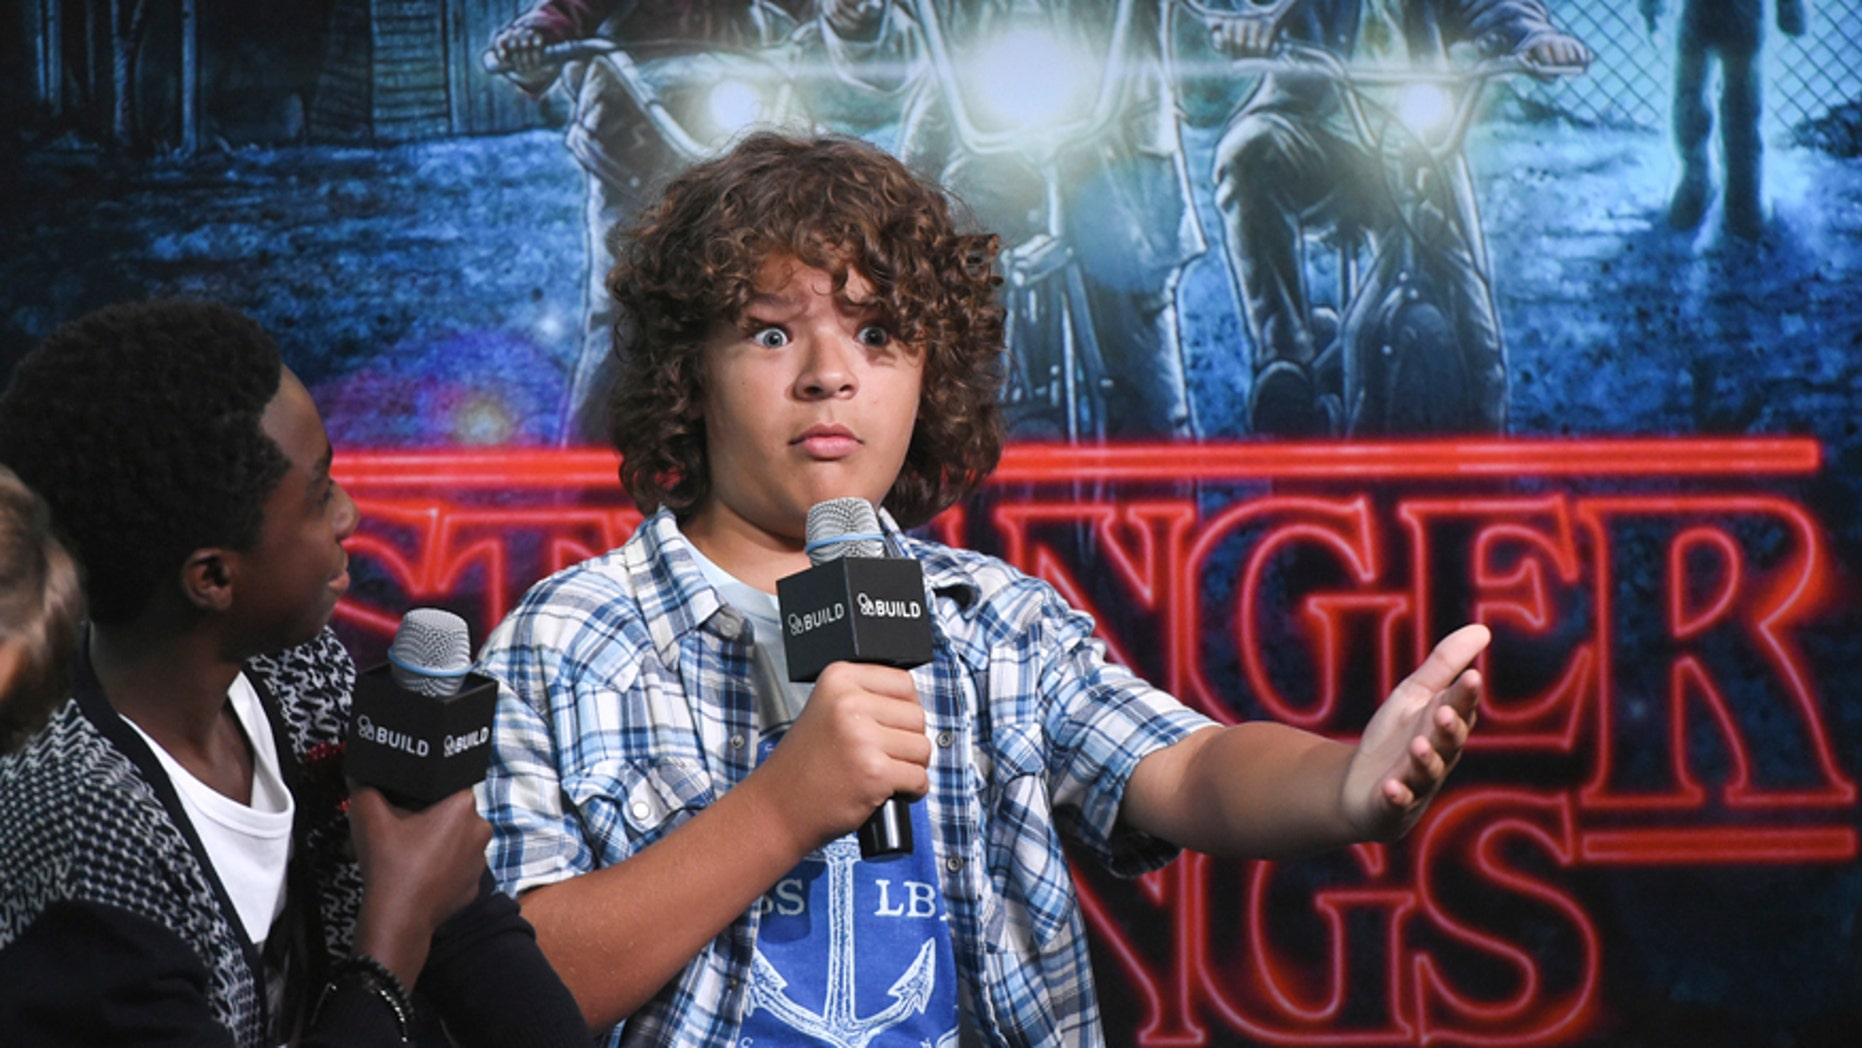 """In this Aug. 31, 2016, file photo, actor Gaten Matarazzo participates in the BUILD Speaker Series to discuss the Netflix series, """"Stranger Things"""", at AOL Studios in New York."""